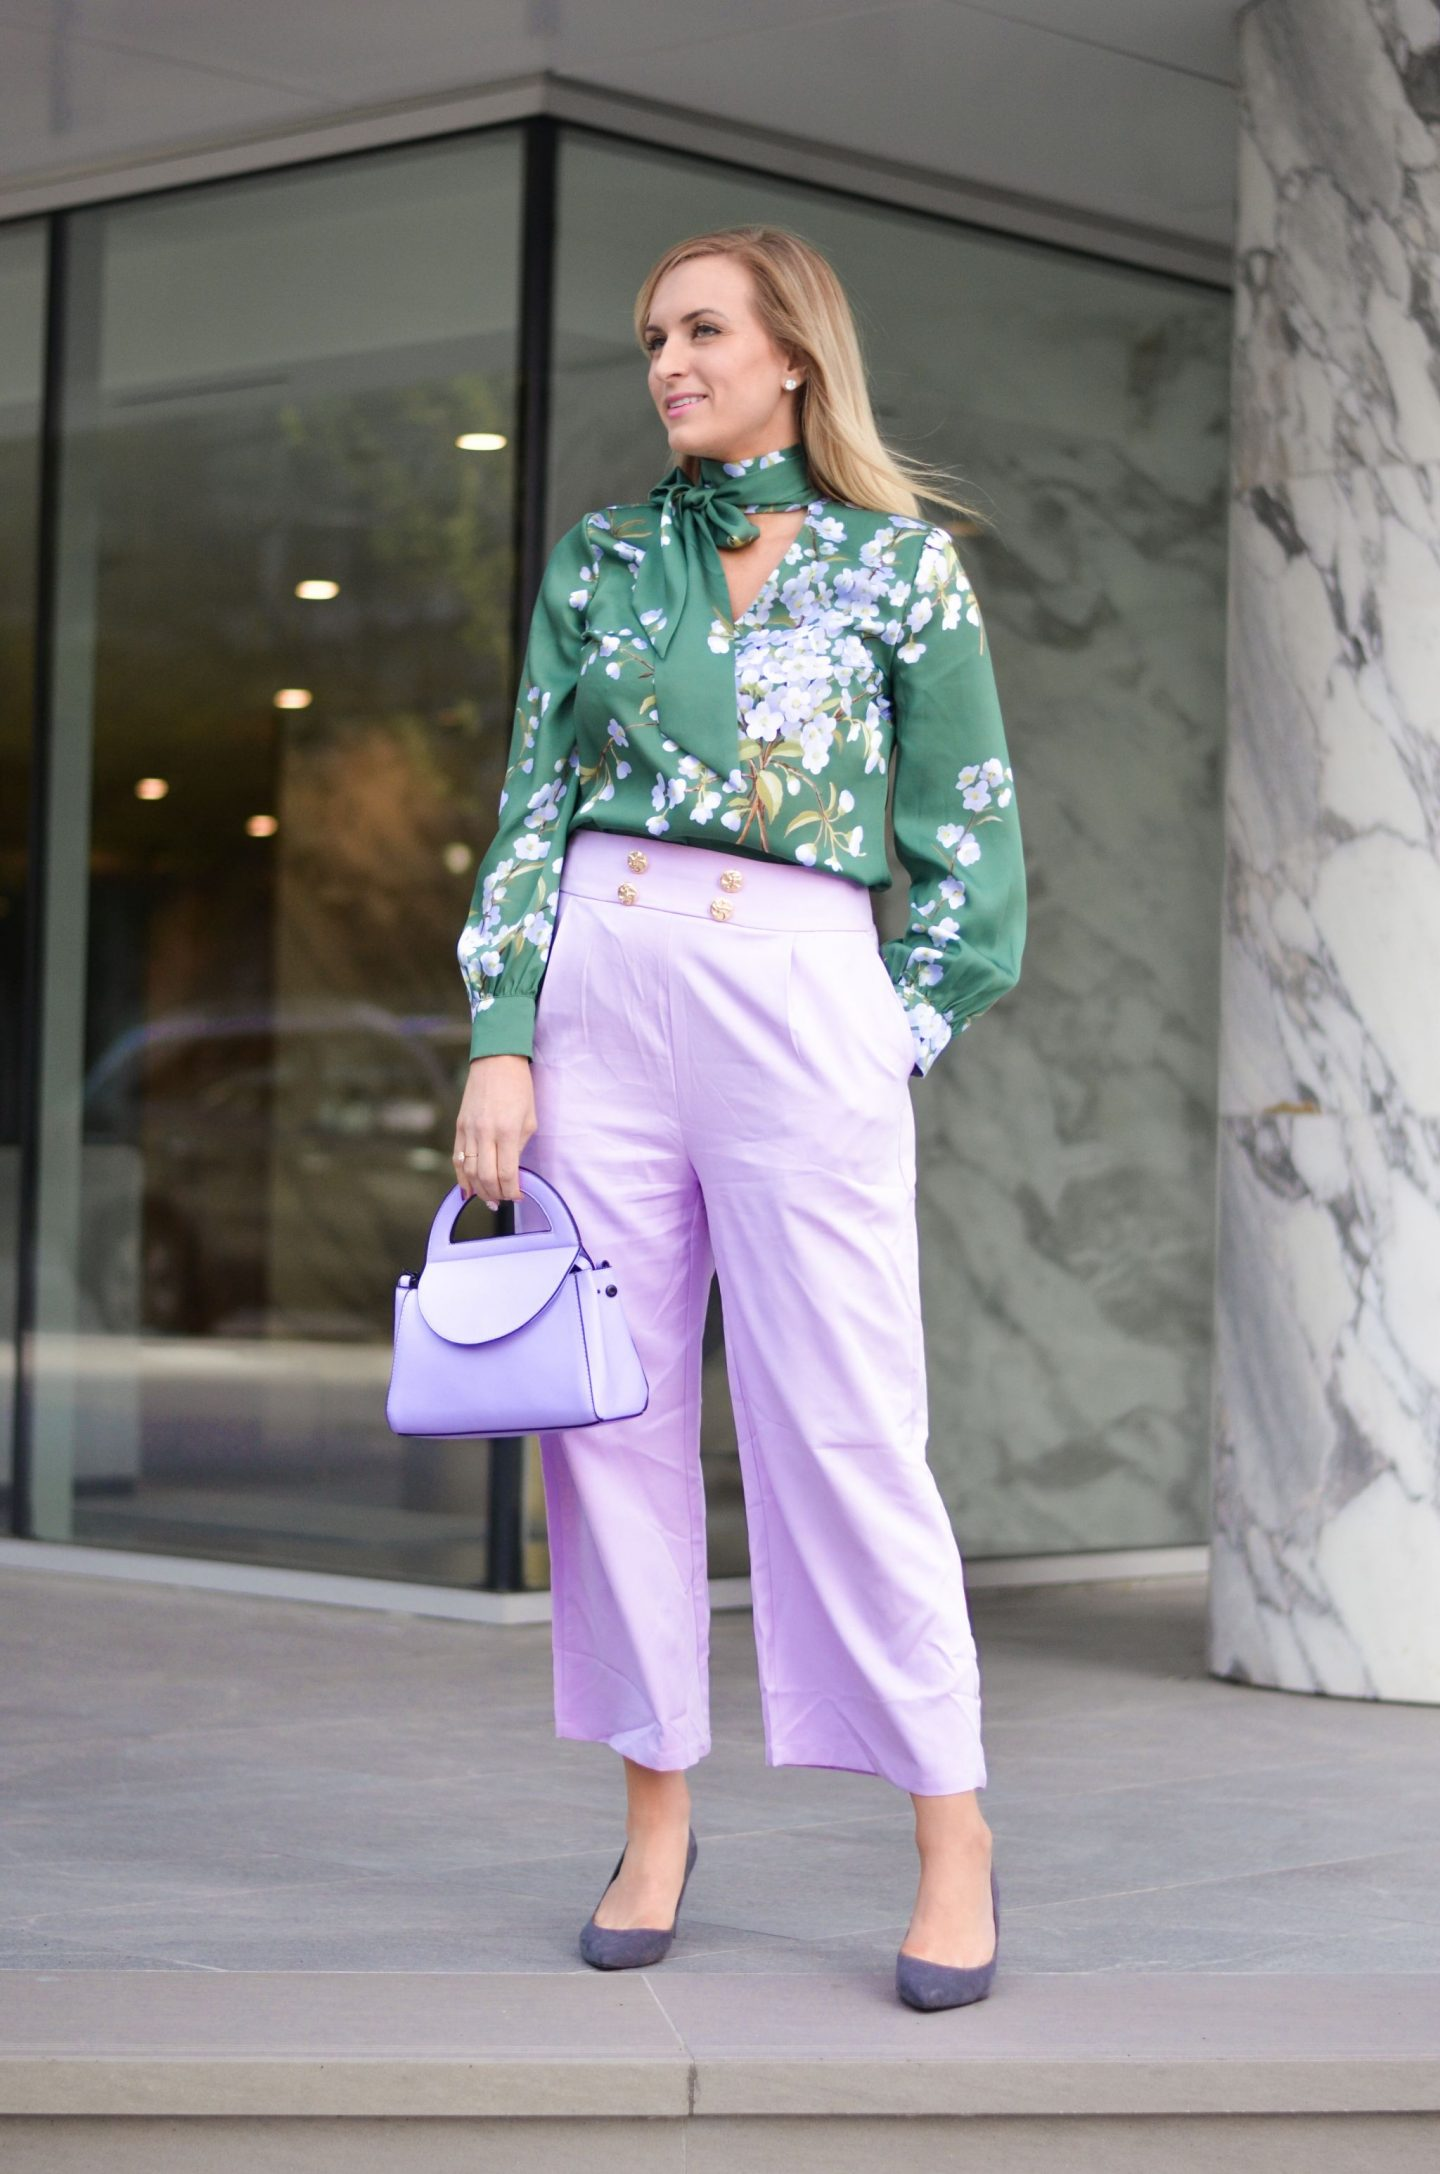 390759c1139 These culottes are an affordable fashion find that can easily be paired  with higher end pieces for a chic but modern spring outfit.